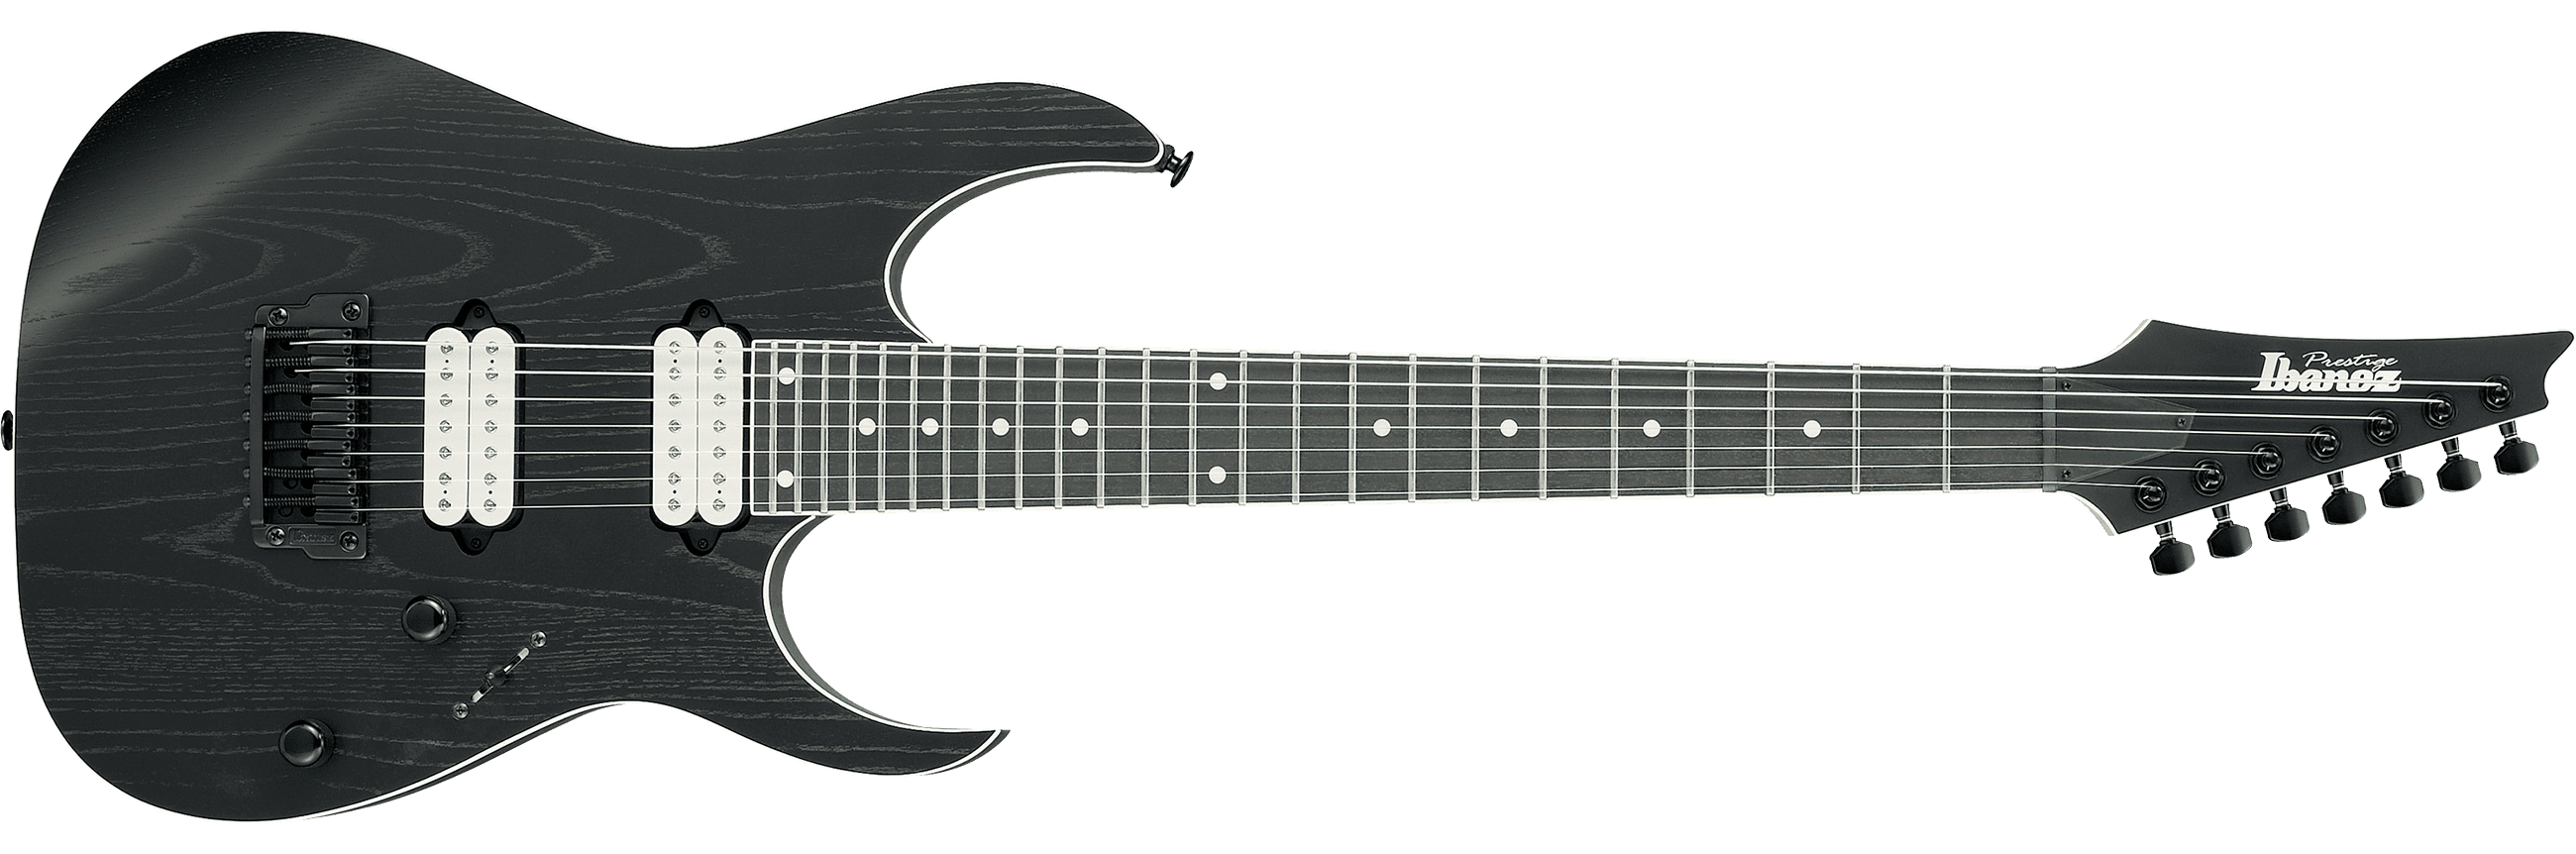 RGR752AHBF | RG | ELECTRIC GUITARS | PRODUCTS | Ibanez guitars on